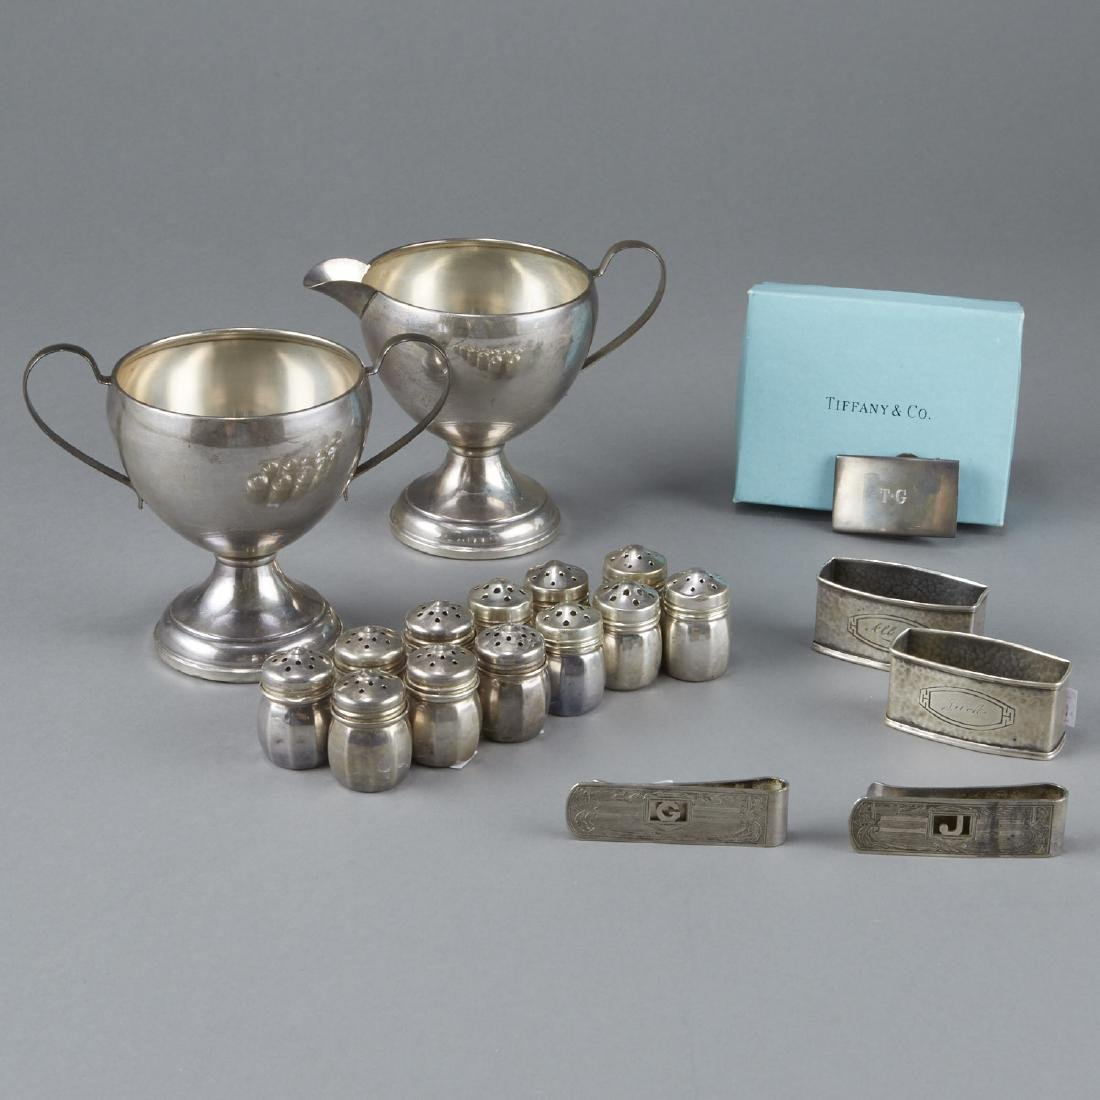 Group of Sterling Silver Objects Tiffany